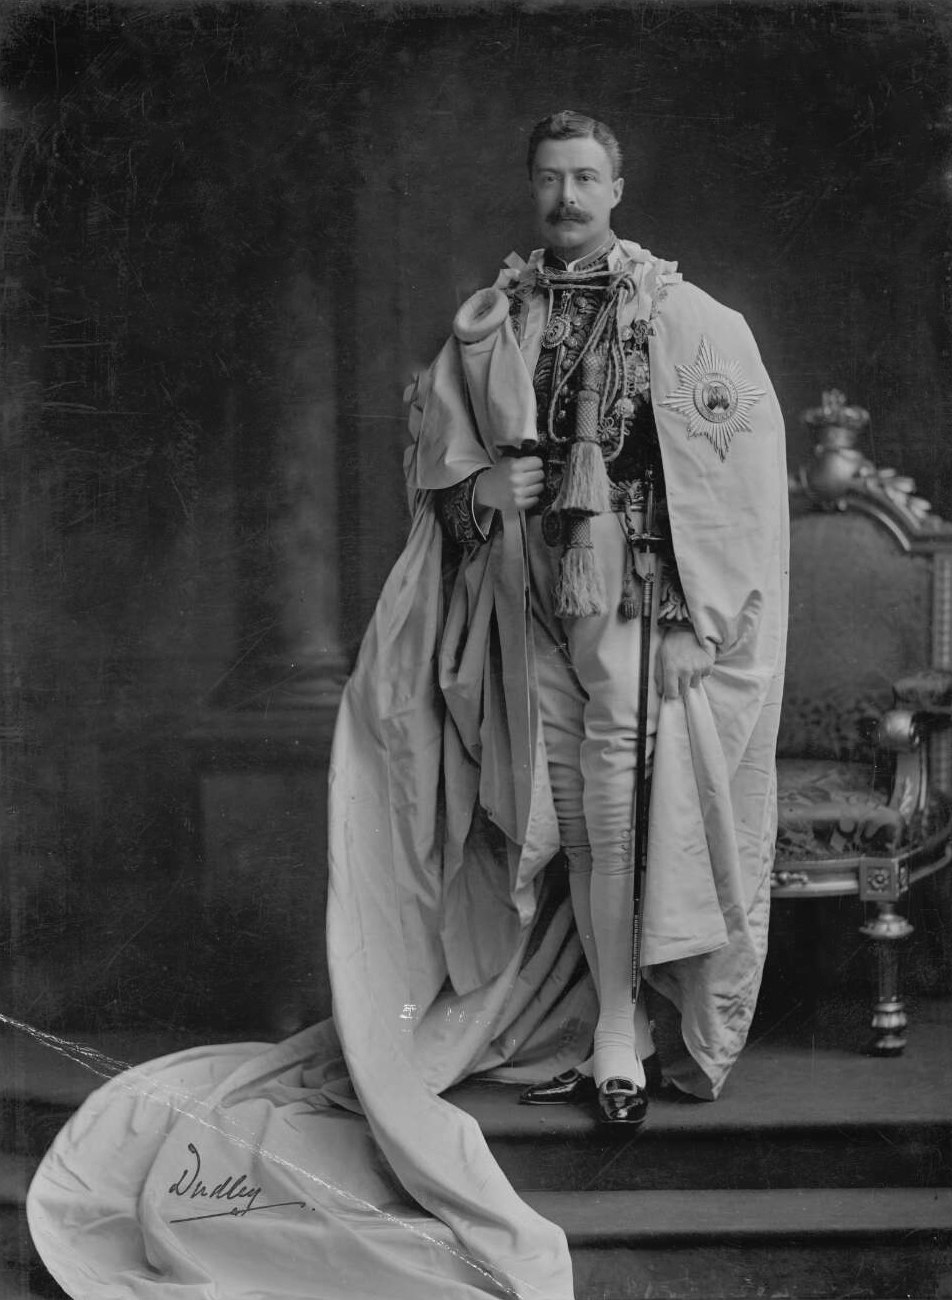 Lord Dudley, Grand Master of the Order of St. Patrick